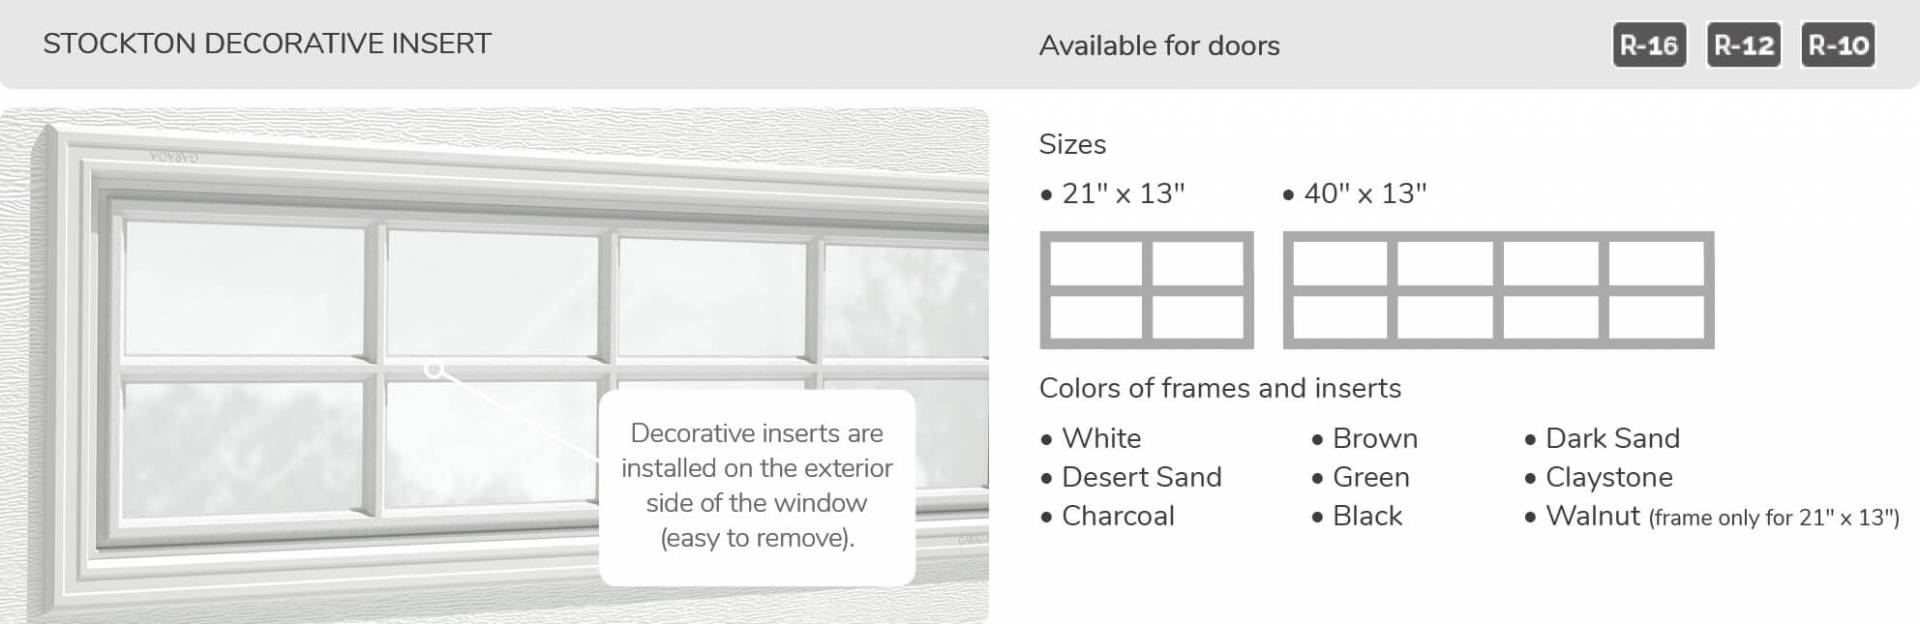 Stockton Decorative Insert, 21' x 13' and 40' x 13', available for doors R-16, R-12 and R-10